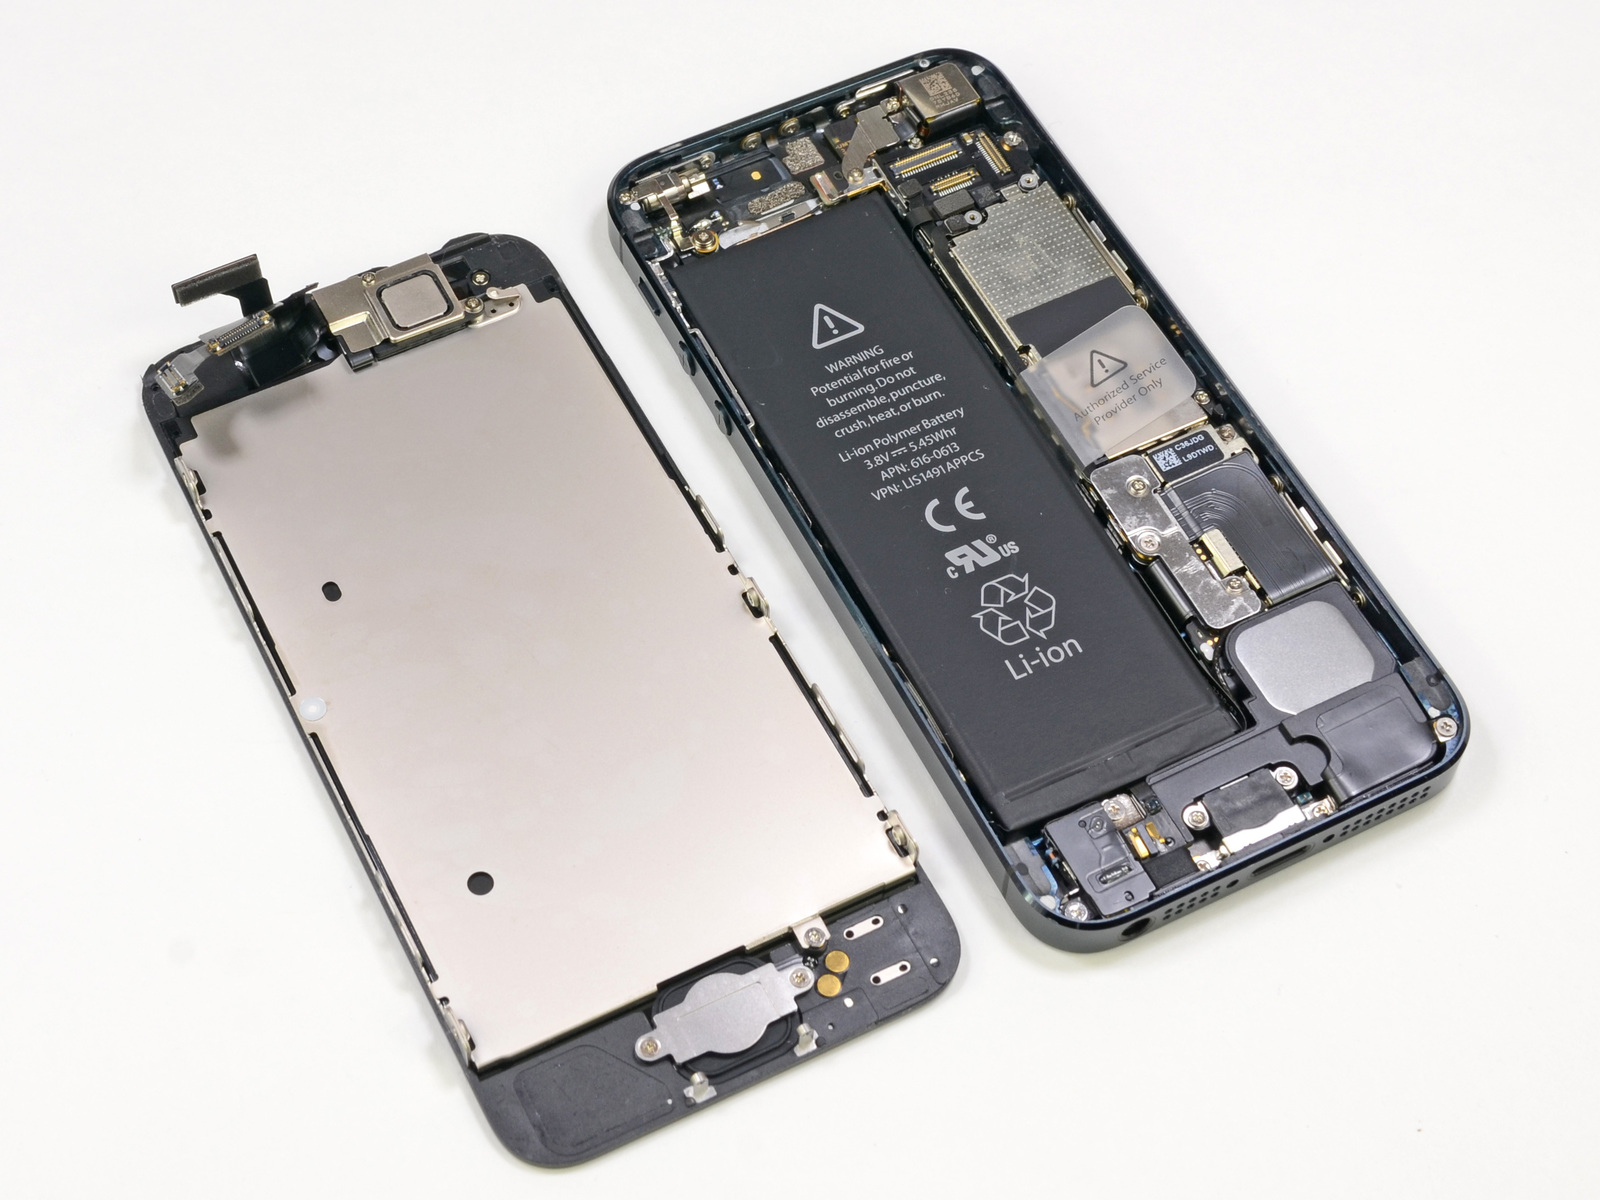 iPhone-5-teardown-iFixIt-001